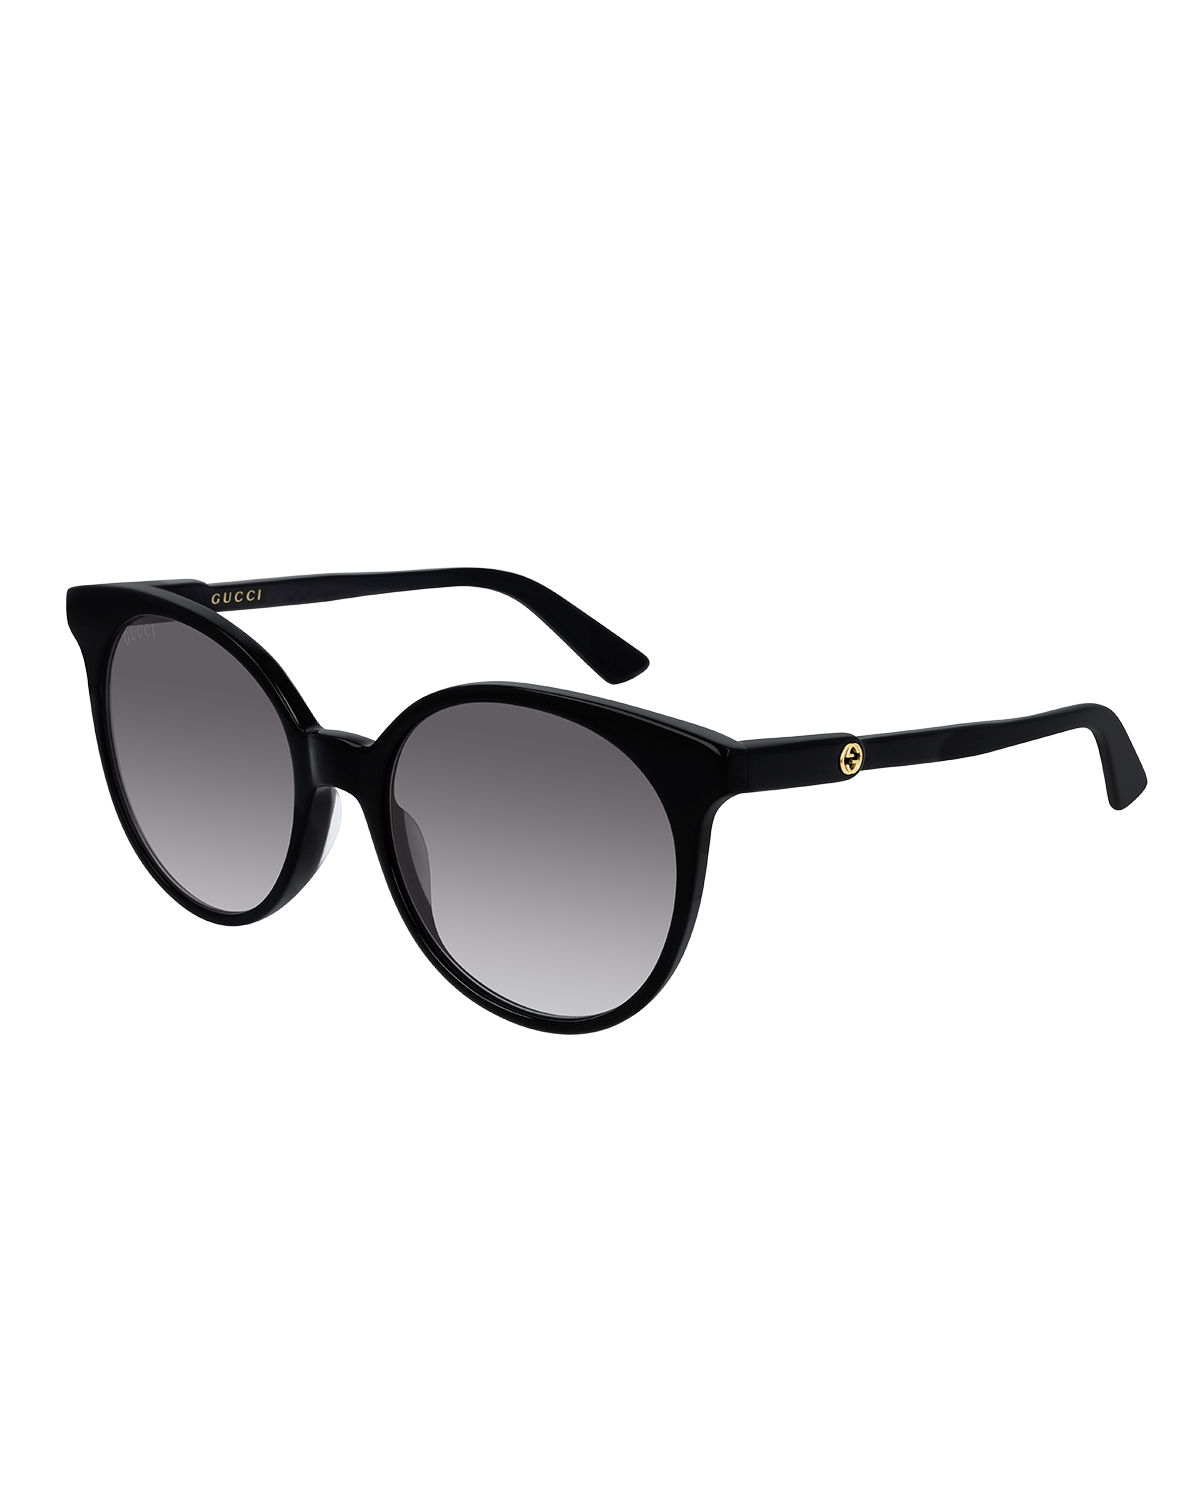 Gucci Sunglasses ROUND GRADIENT SUNGLASSES W/ TRANSPARENT ARMS